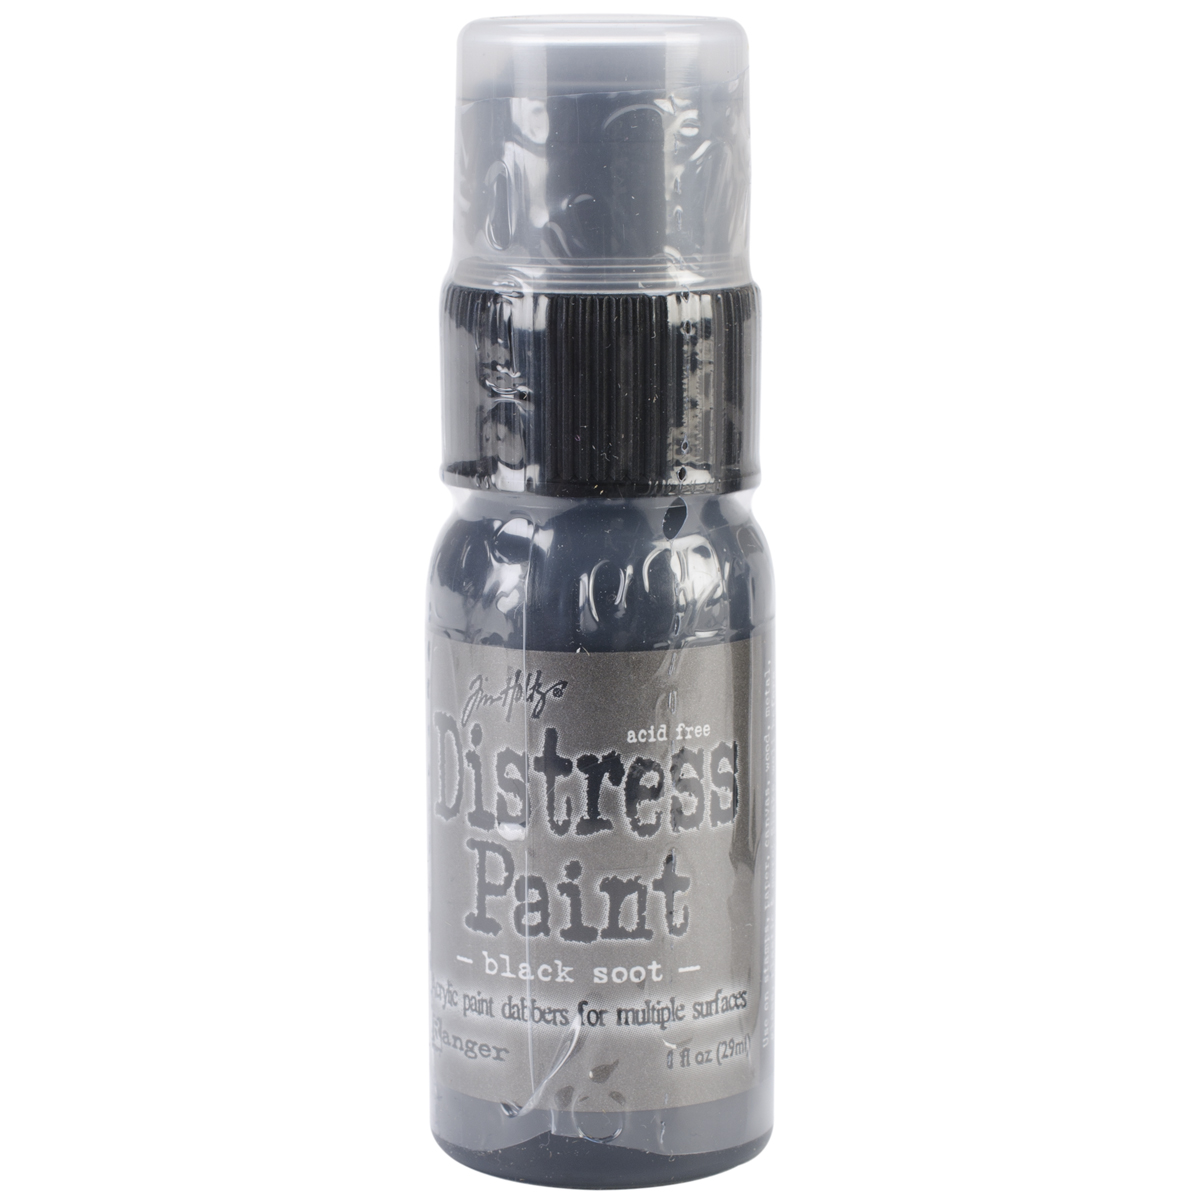 Tim Holtz Distress Paint Dabber 1oz-Black Soot